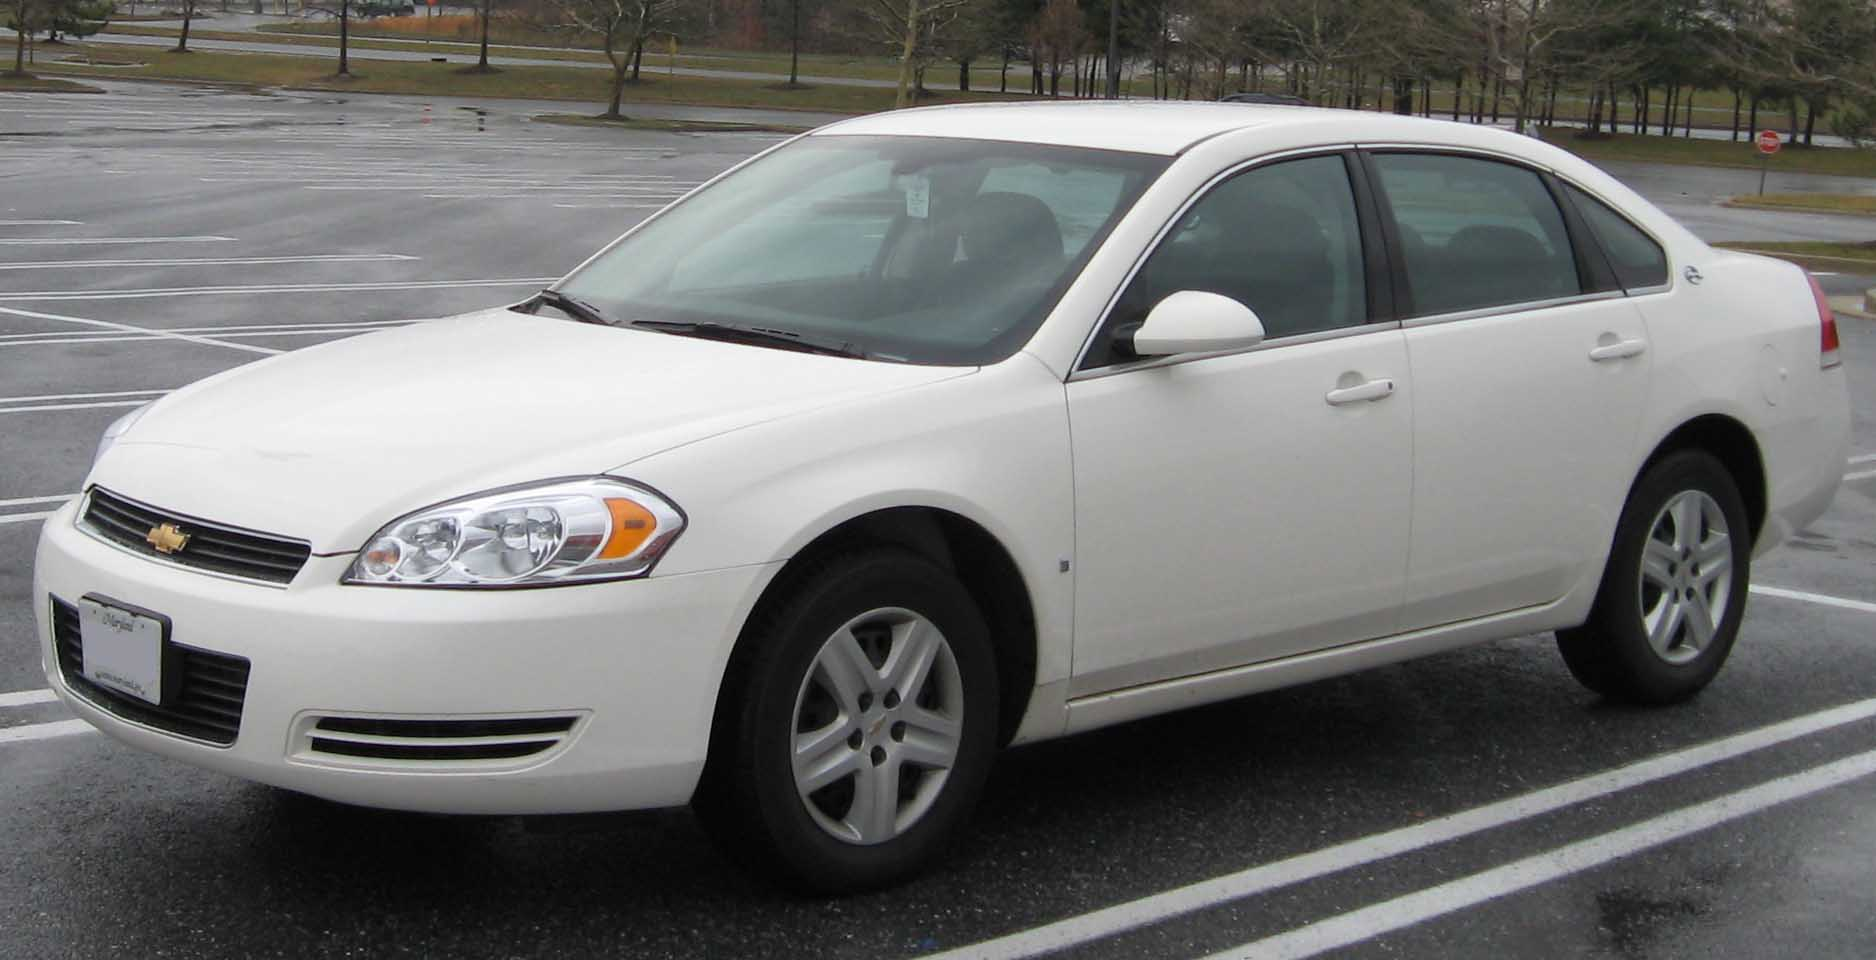 Awesome File:Chevrolet Impala LS